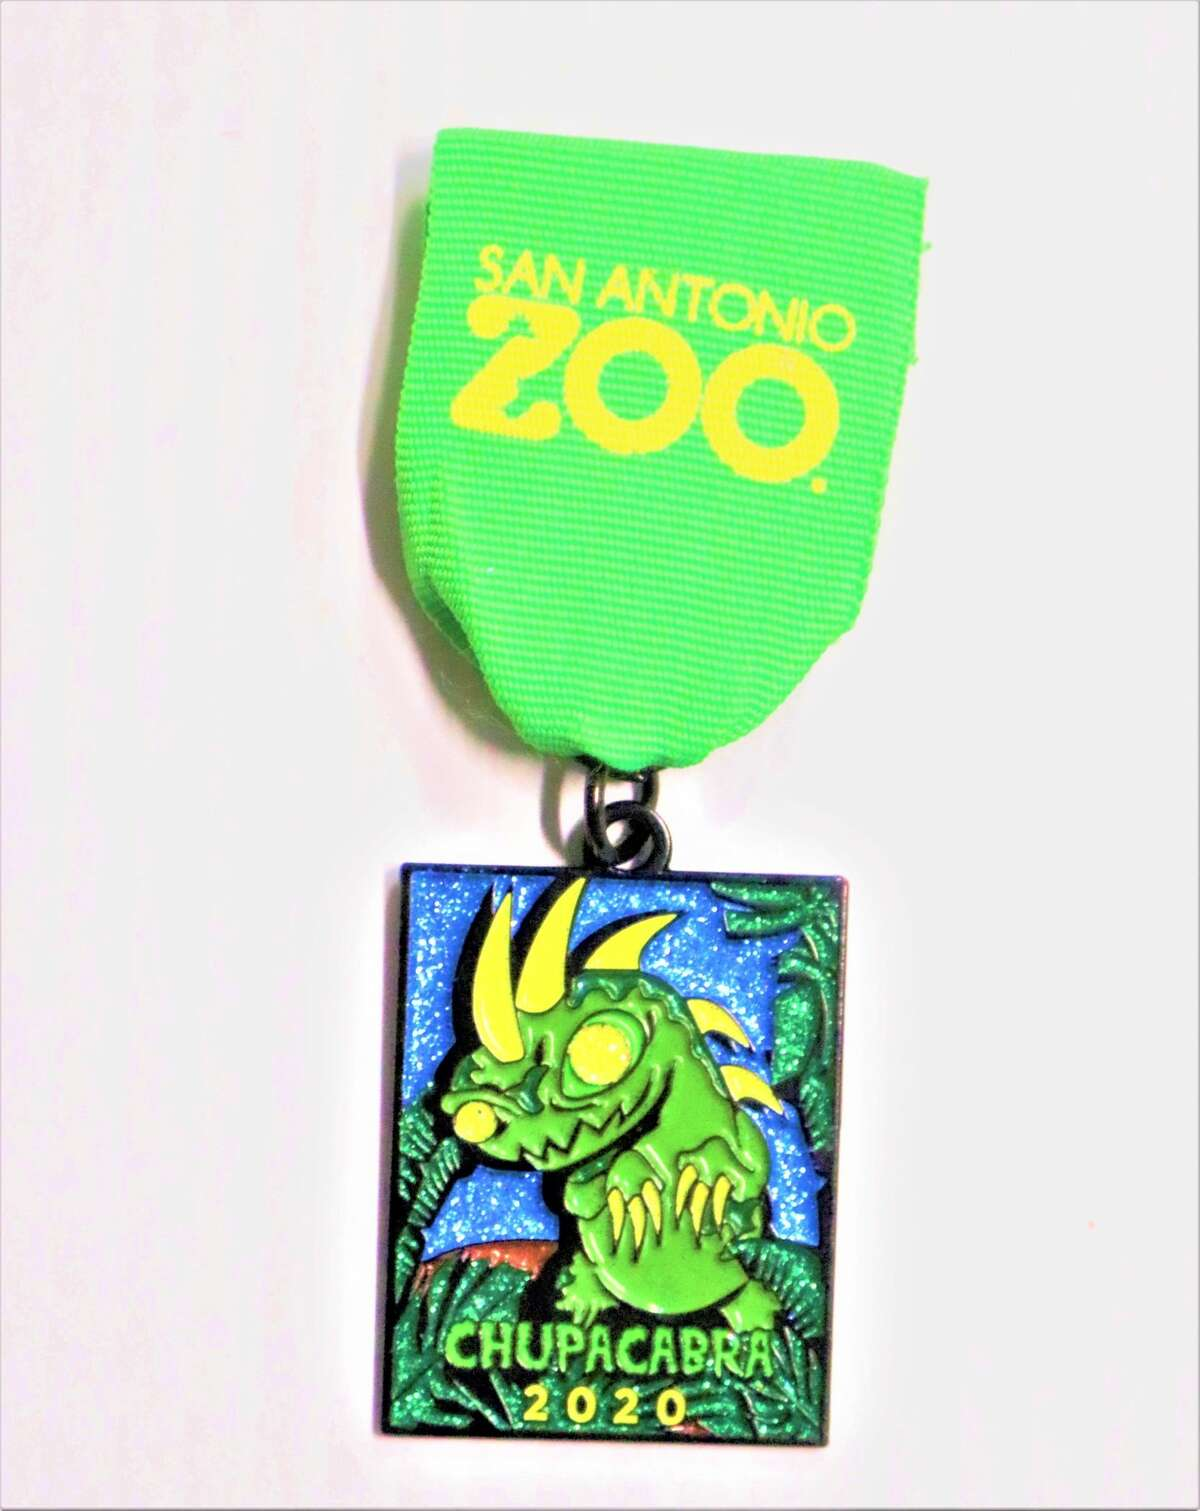 The San Antonio Zoo will soon introduce a new, never before seen exhibit of an animal so rare it has never been seen before. Well, some people claim to have seen the Chupacabra. The zoo will also sell a Chupacabra Fiesta medal.